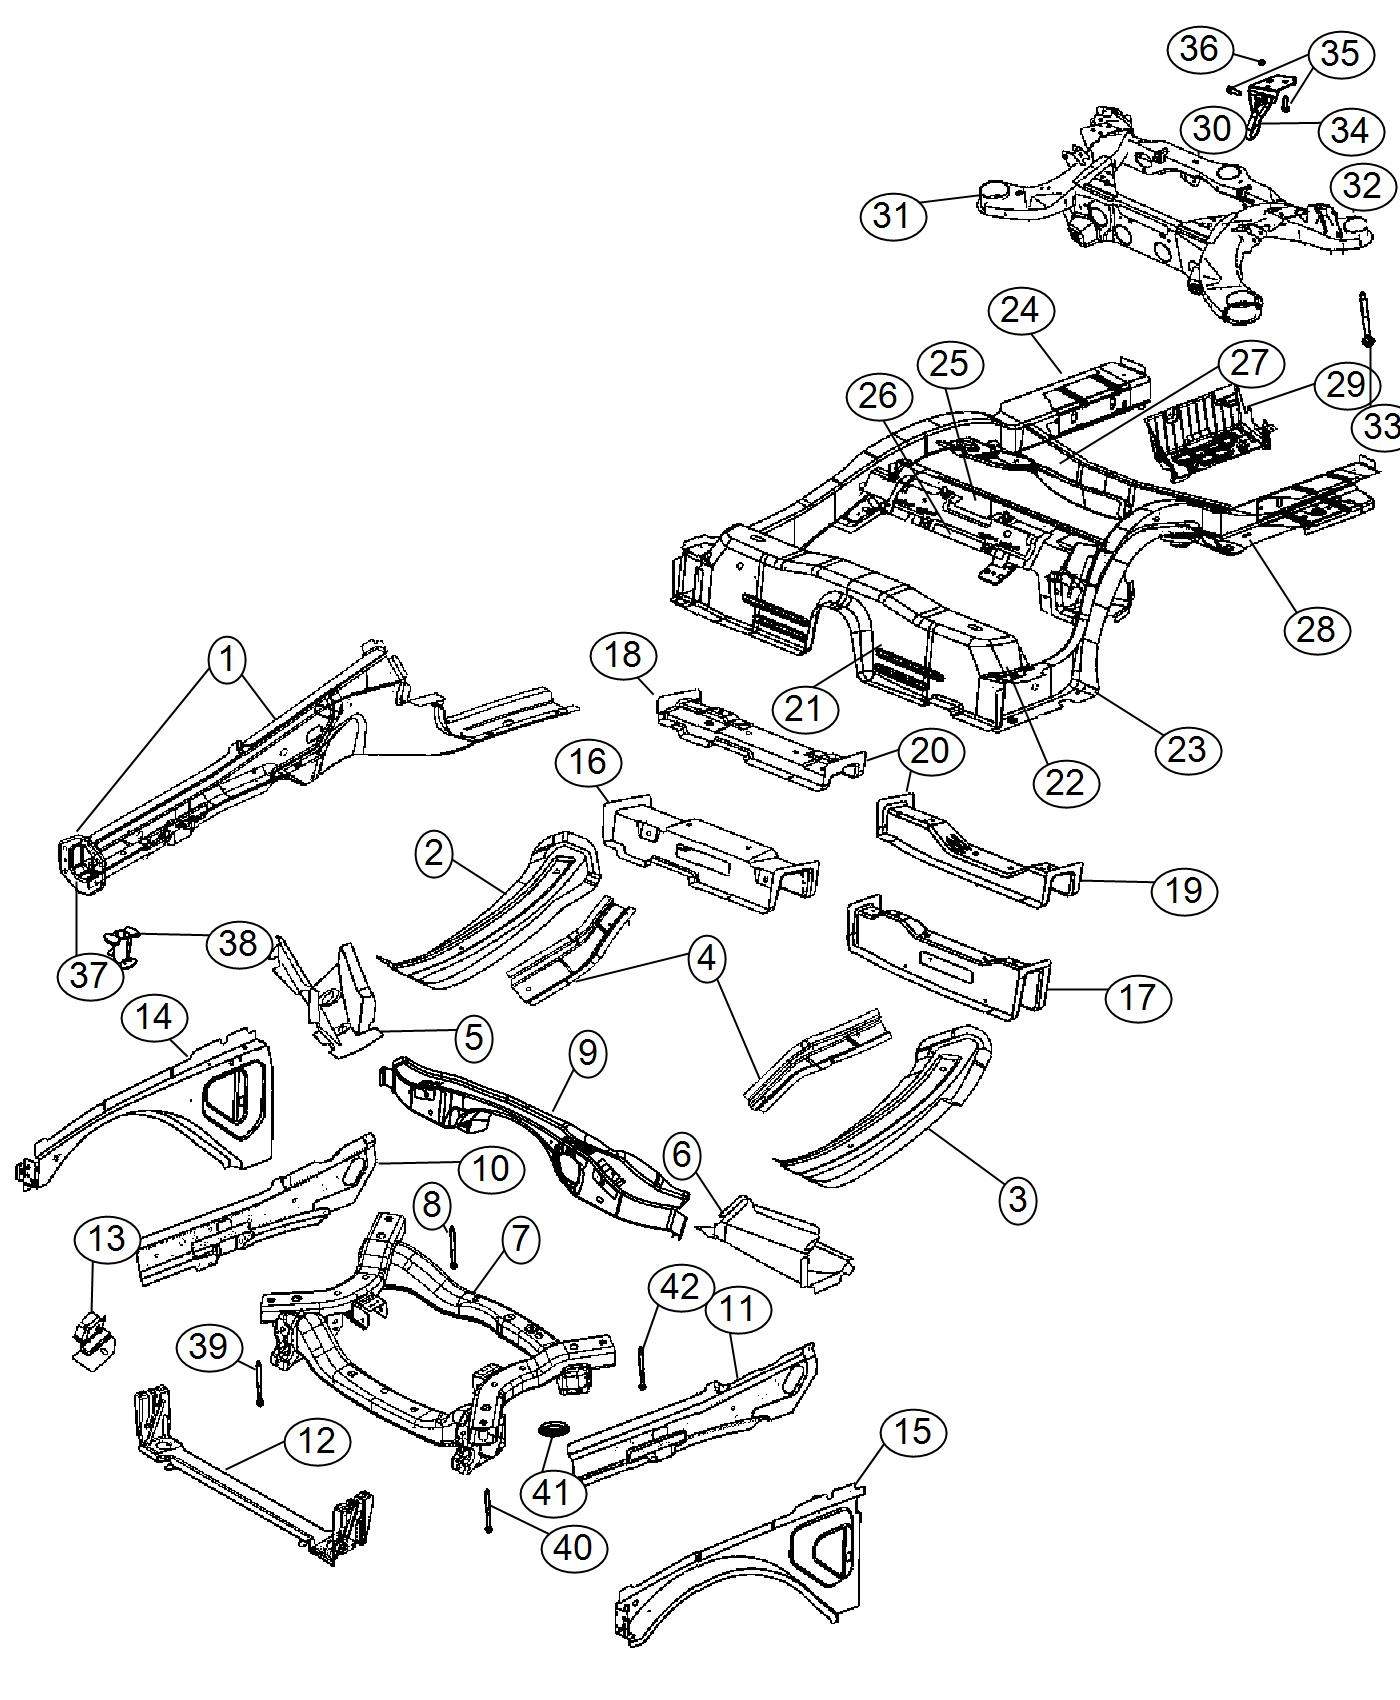 2017 Dodge Charger Subframe. Rear Axle. [ezh]. Complete